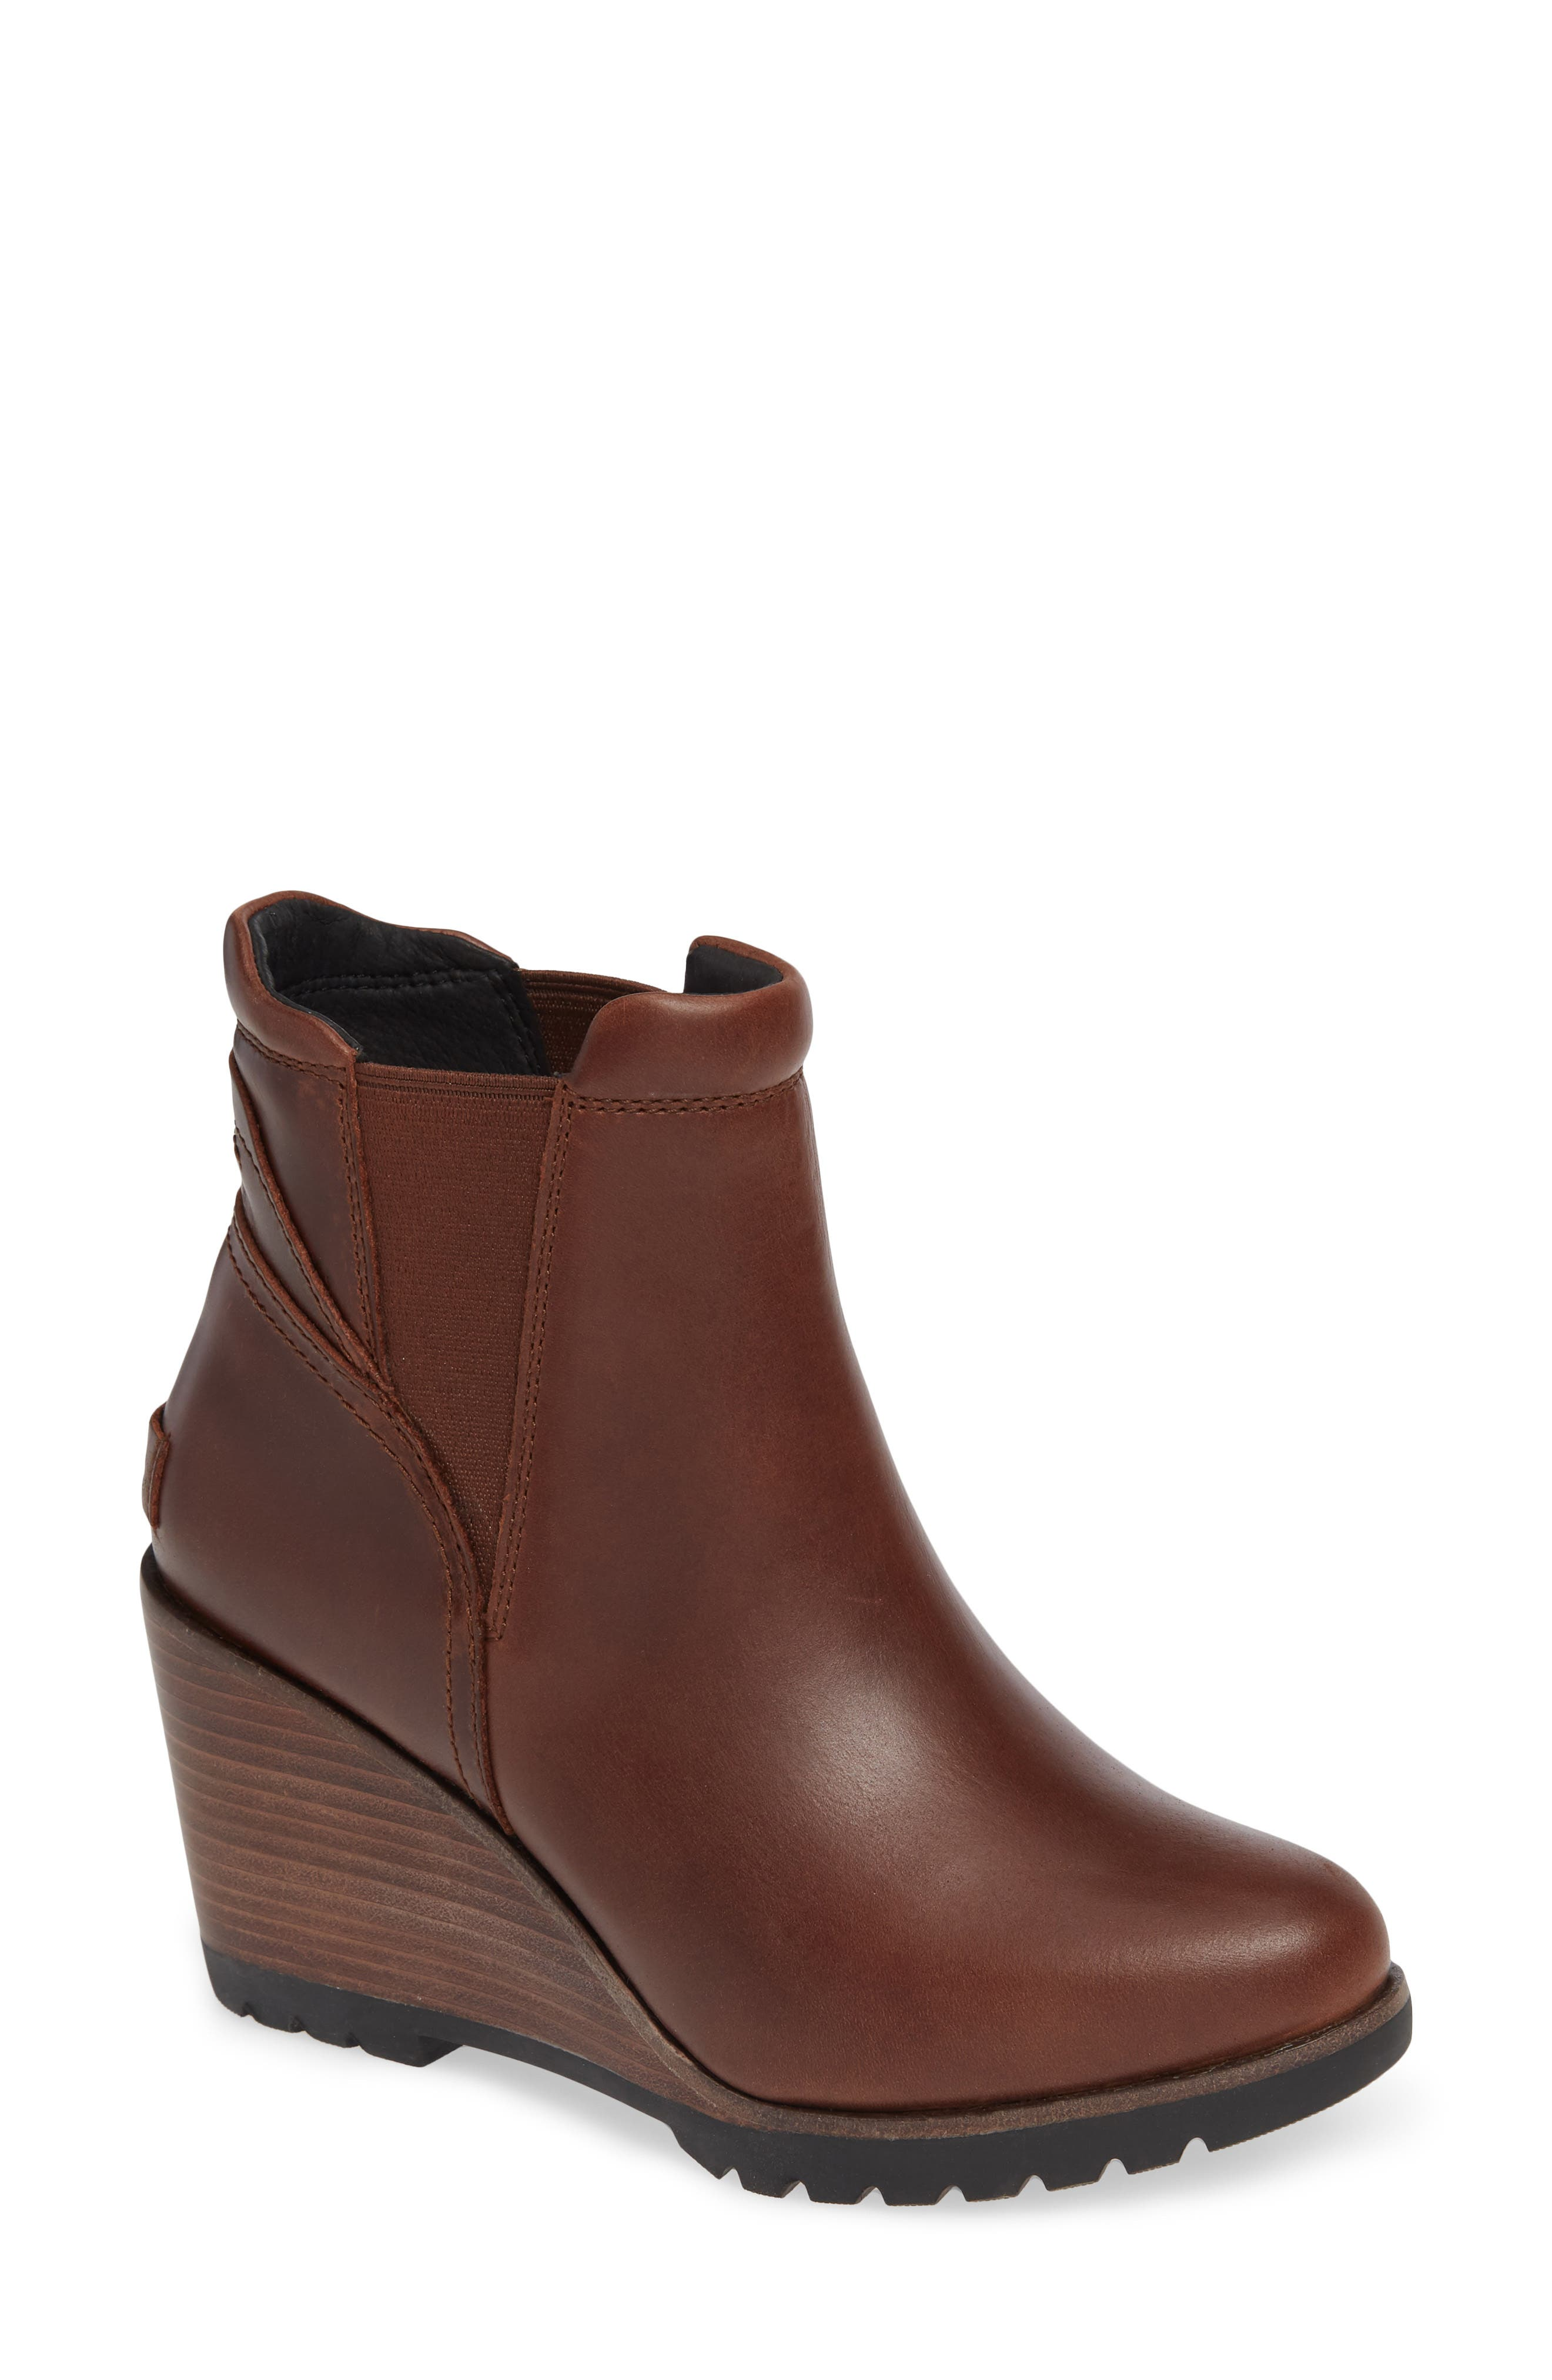 Sorel After Hours Chelsea Boot, Brown